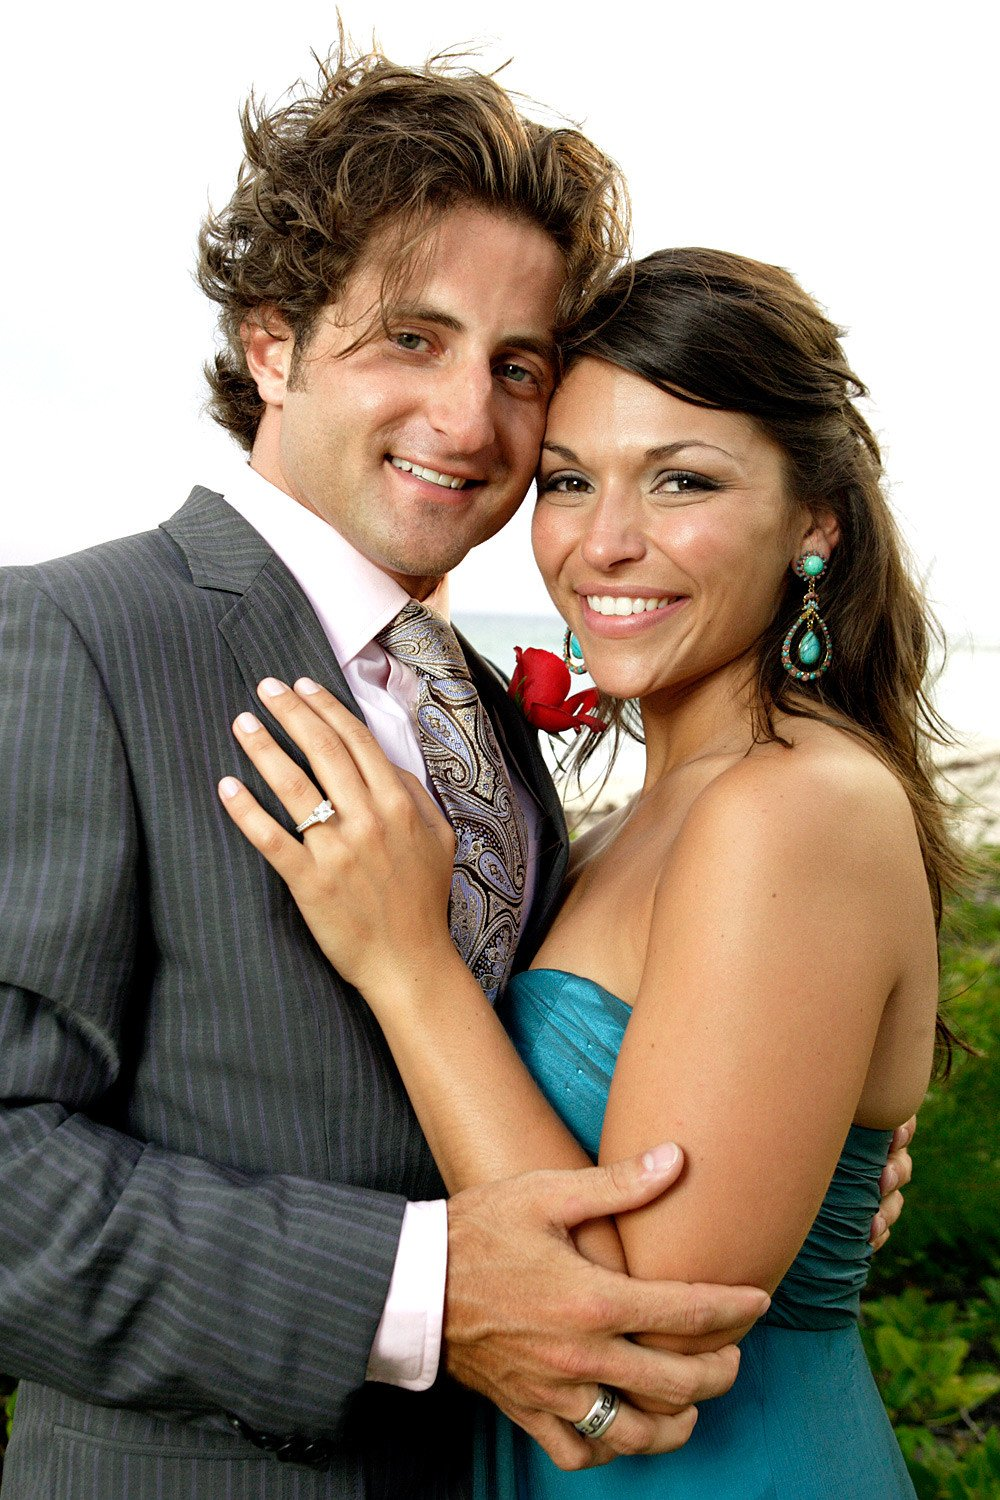 Deanna pappas dating real world